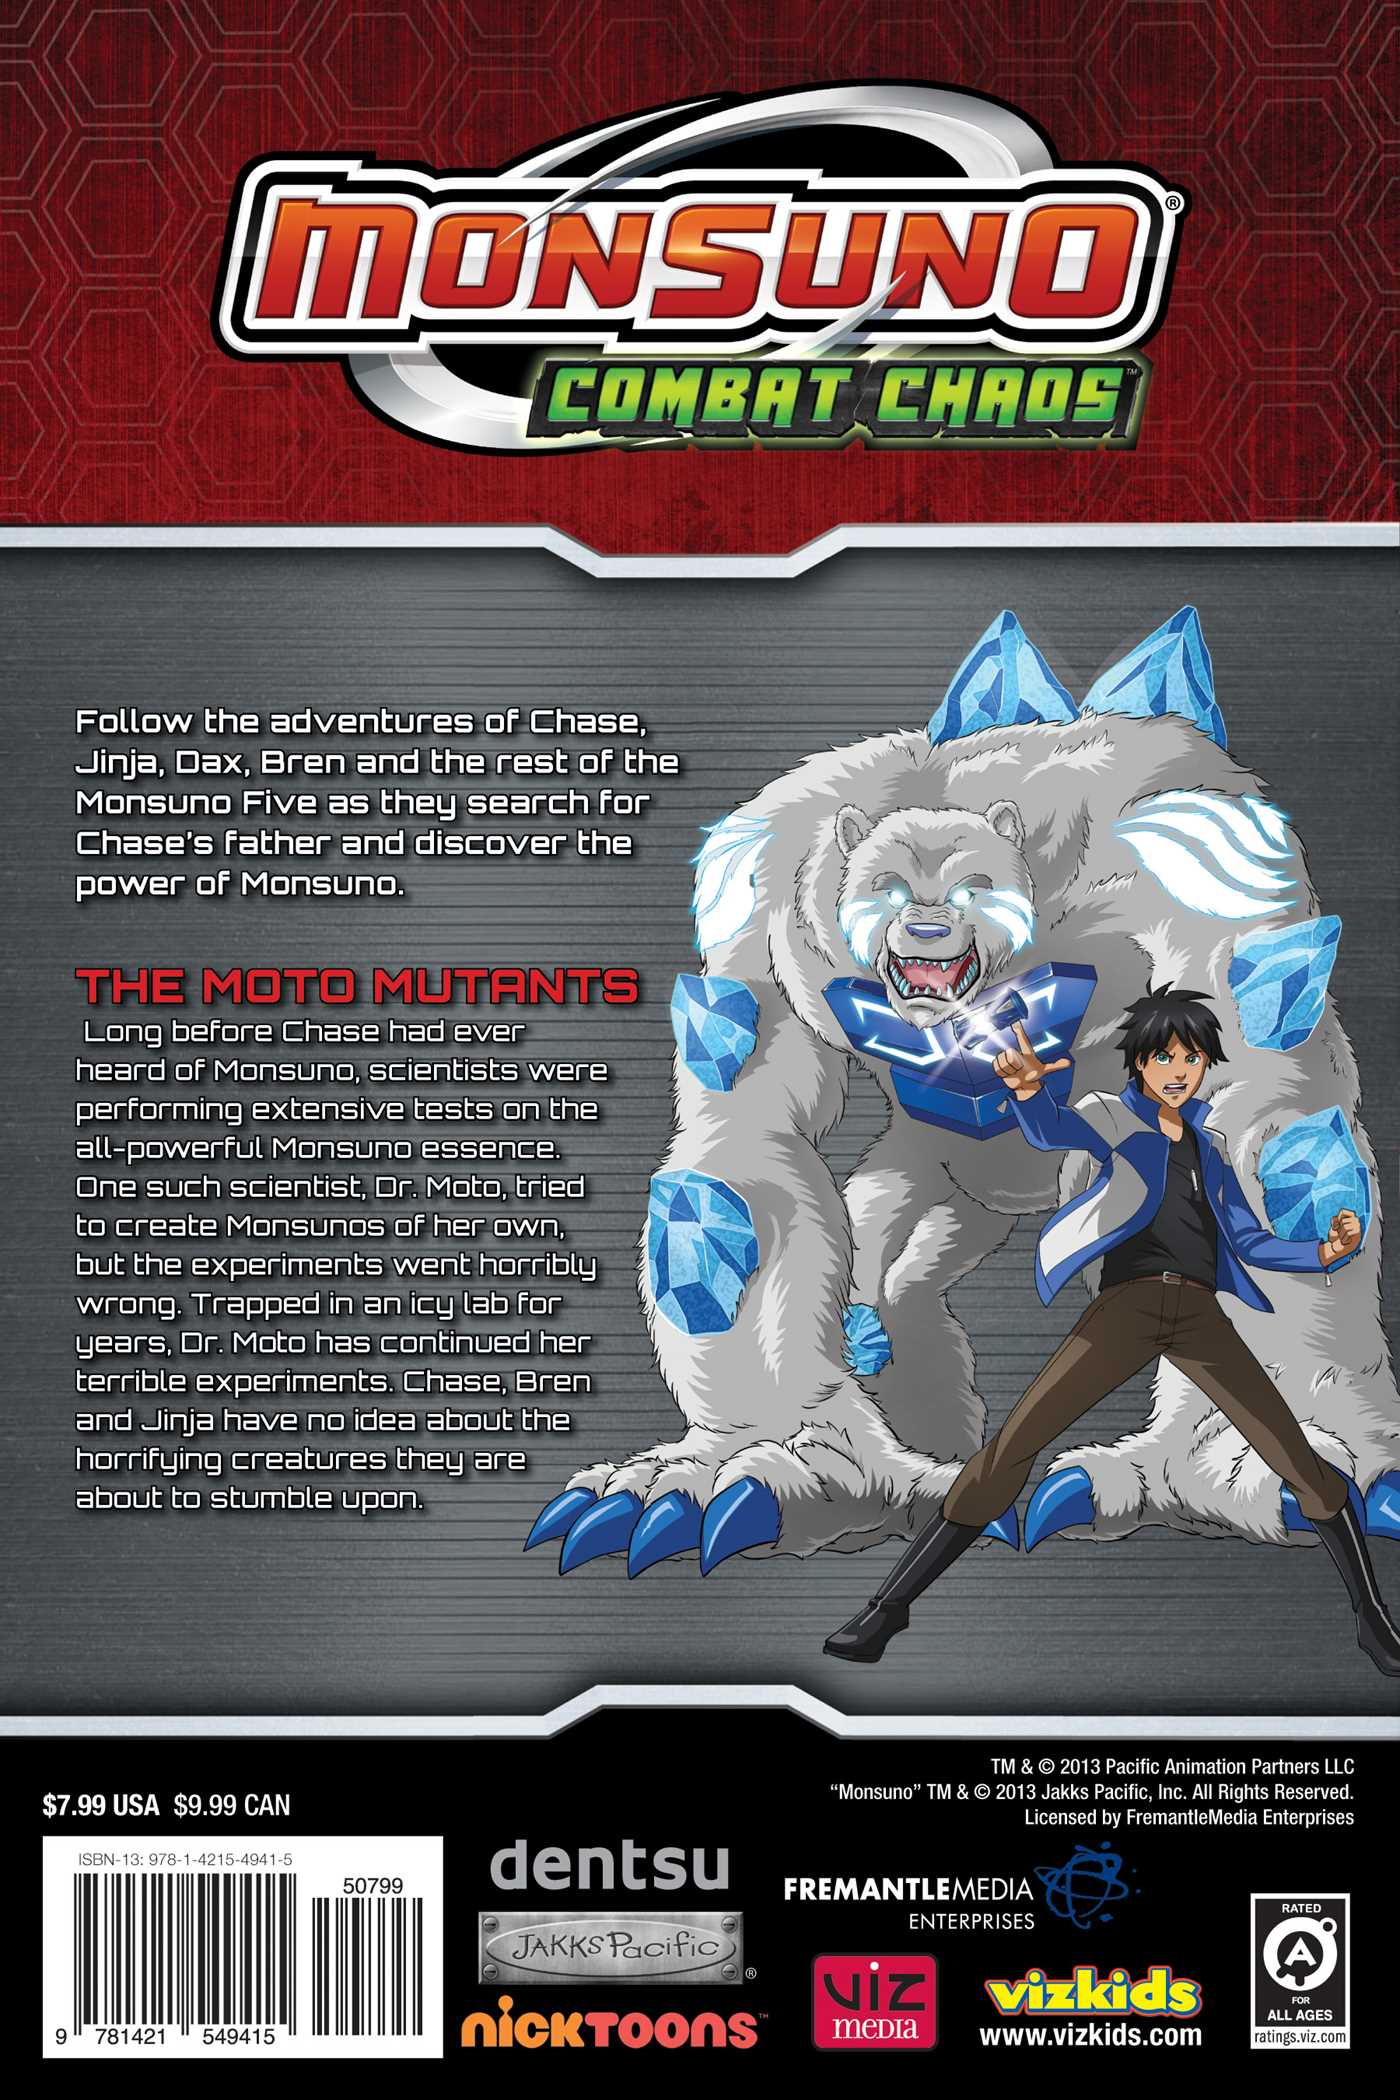 Monsuno-combat-chaos-vol-1-the-moto-mutants-9781421549415_hr-back